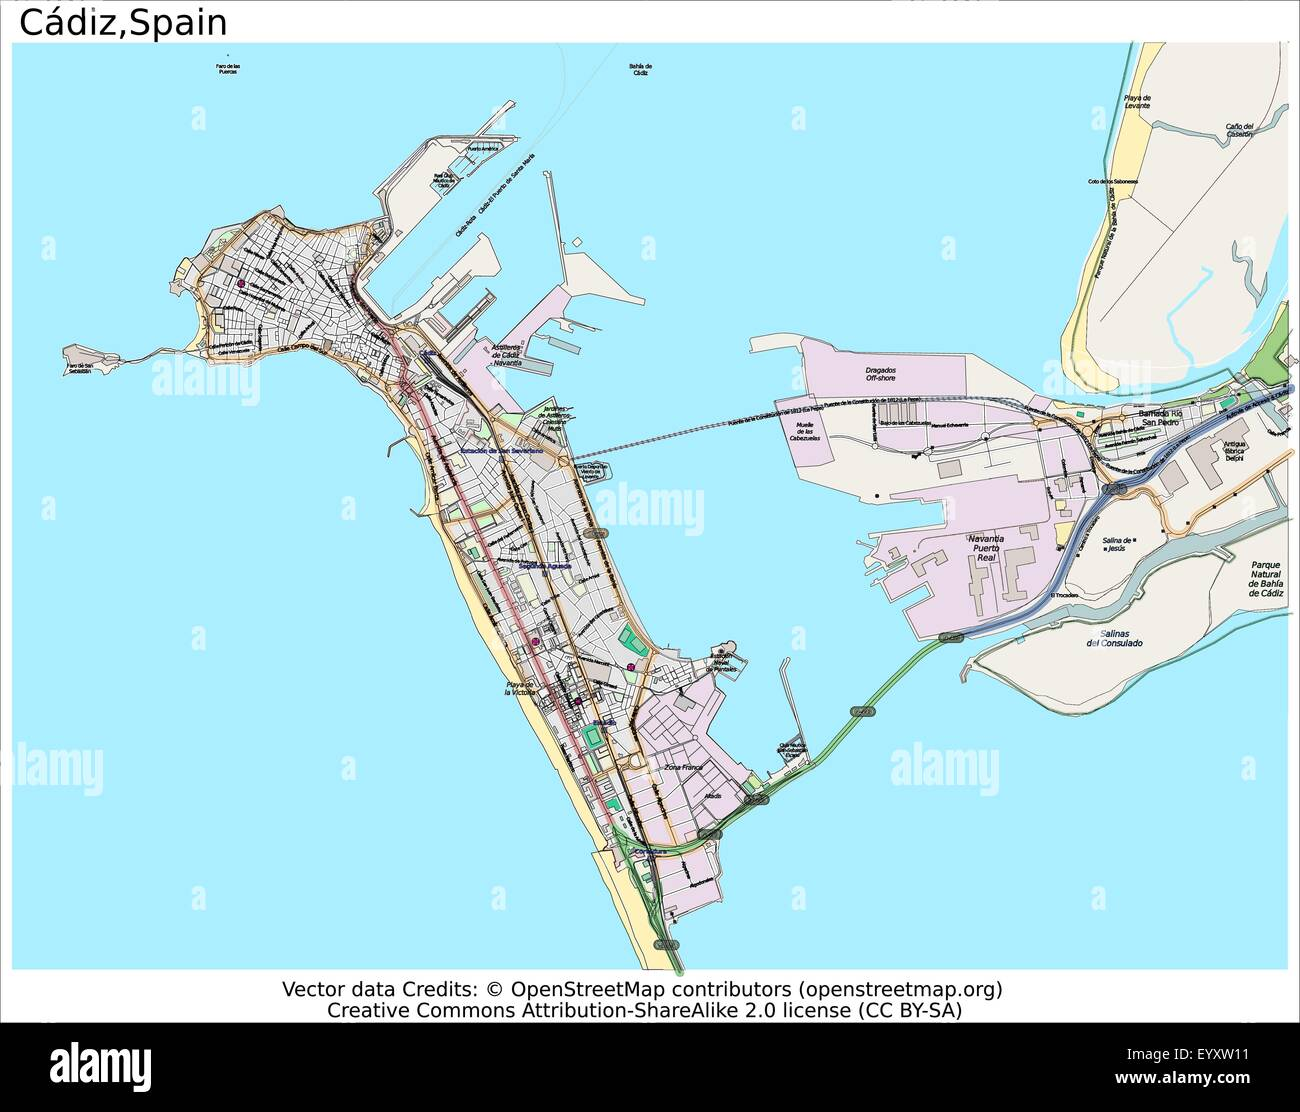 Cadiz Spain Country city island state location map Stock Vector Art on